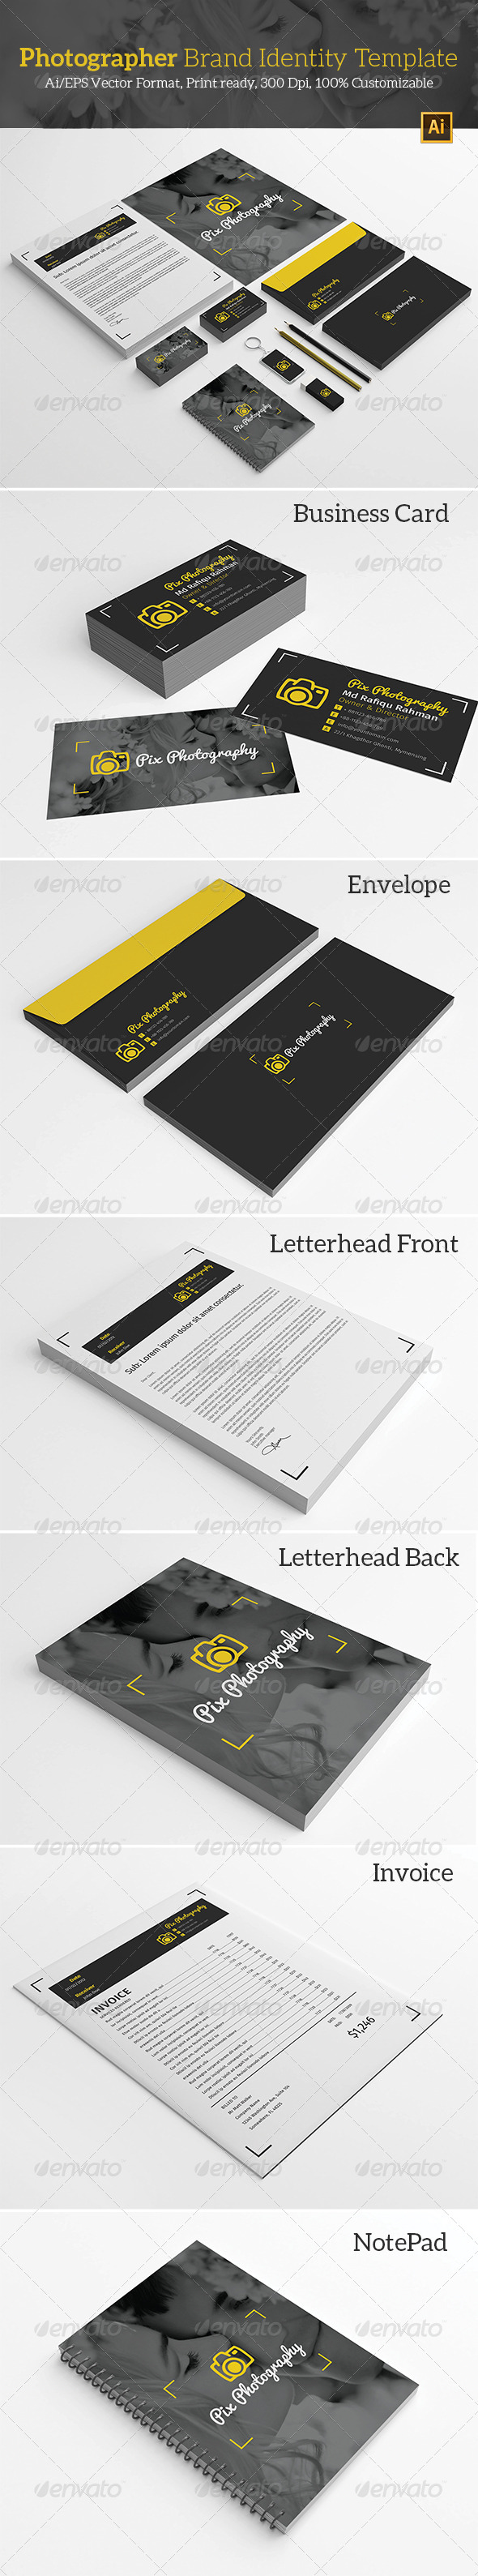 GraphicRiver Photographer Brand Identity Template 7333367